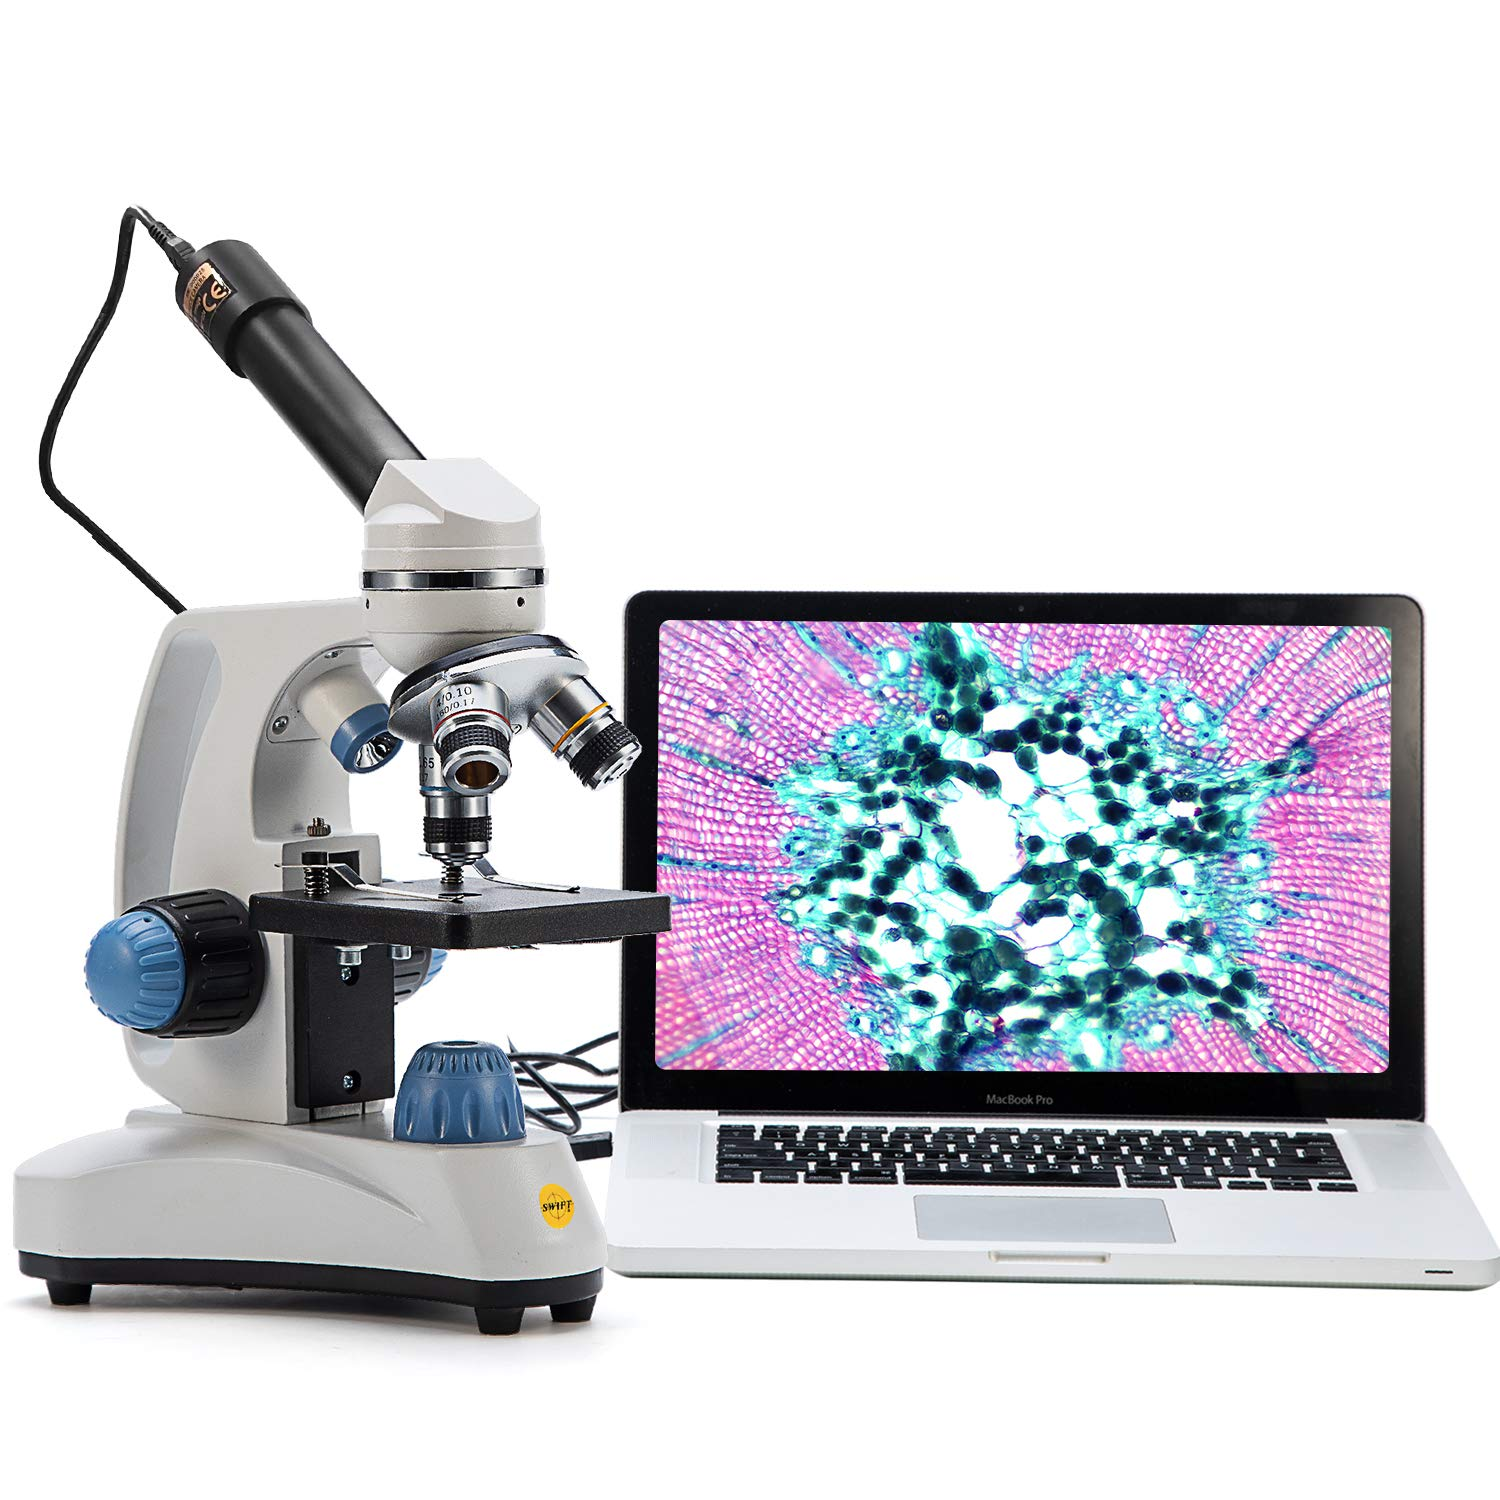 SWIFT Microscope SW150,Compound Student Microscope,40X-1000X,Monocular Head,Coarse & Fine Focusing,Dual Illumination,Cordless-Capable with Eyepiece Camera and Software Windows and Mac Compatible